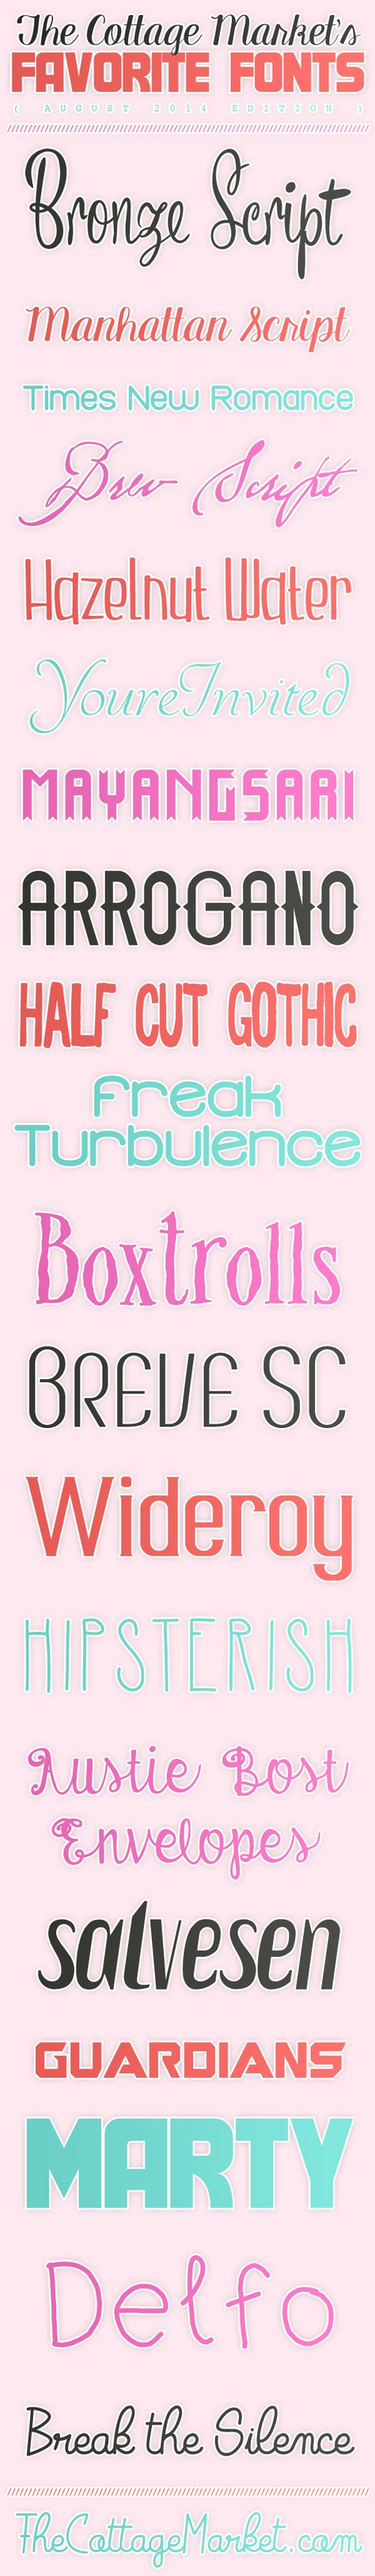 Free Fonts The Cottage Market August 2014 Favorites - The Cottage Market #FreeFonts, #FreeFontCollection, #FunFreeFonts   ALL LINKS INCLUDED On This POST